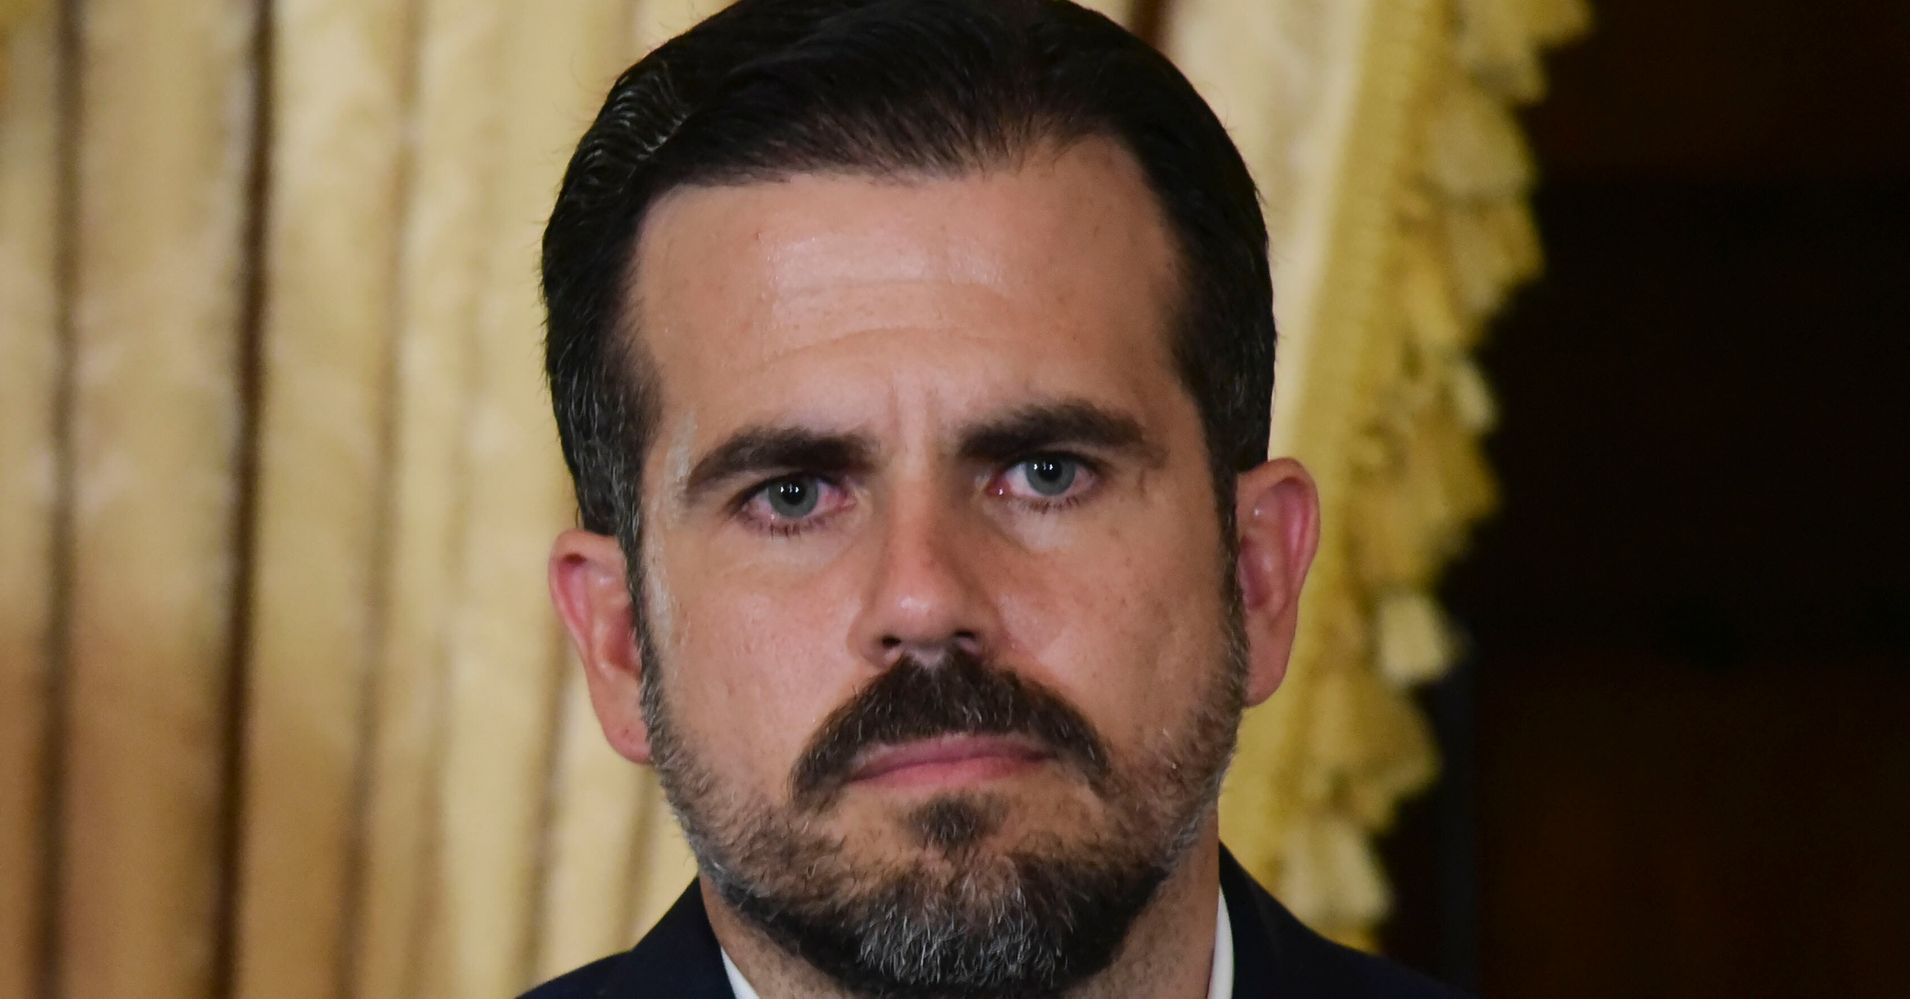 Ricardo Rosselló Won't Seek Reelection As Puerto Rico Governor Amid 'Chatgate' Scandal